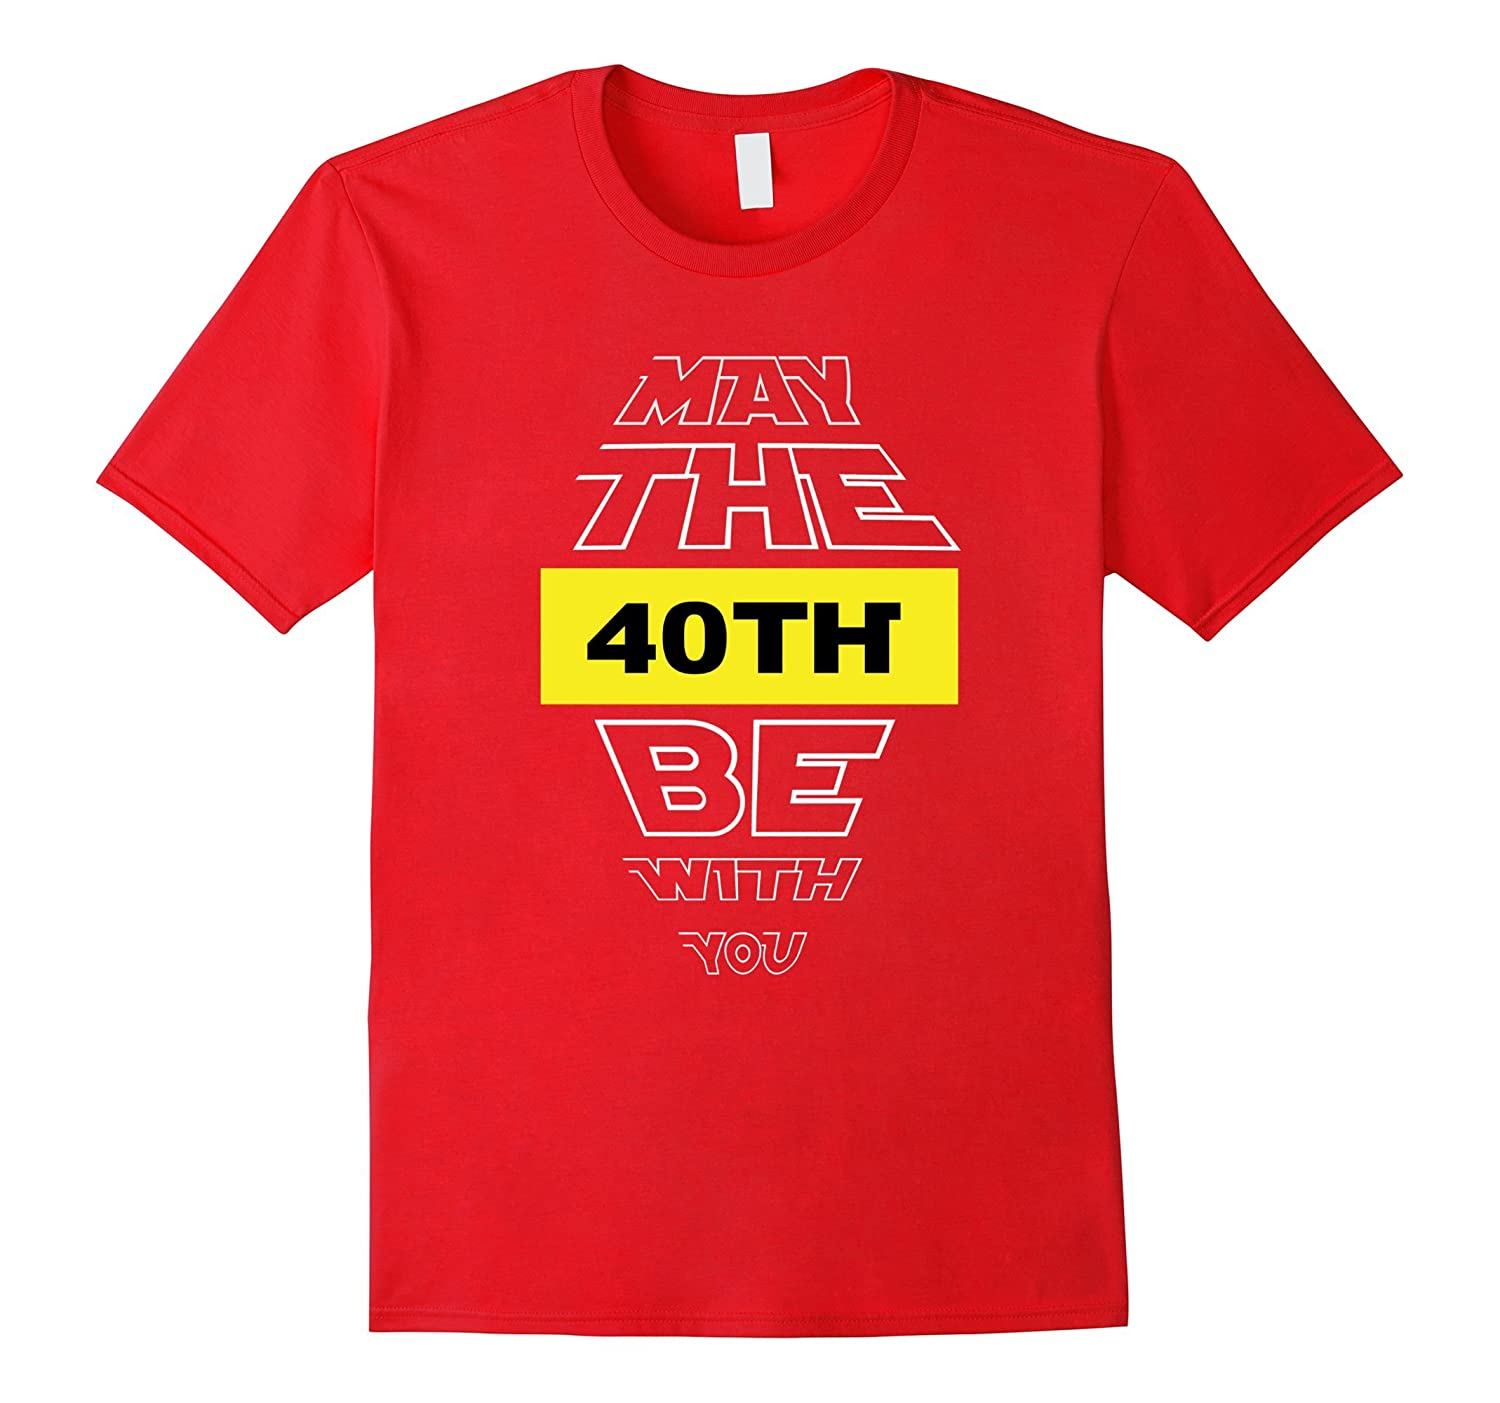 40th Birthday T-Shirt May The 40th Be With You fortieth bday-RT